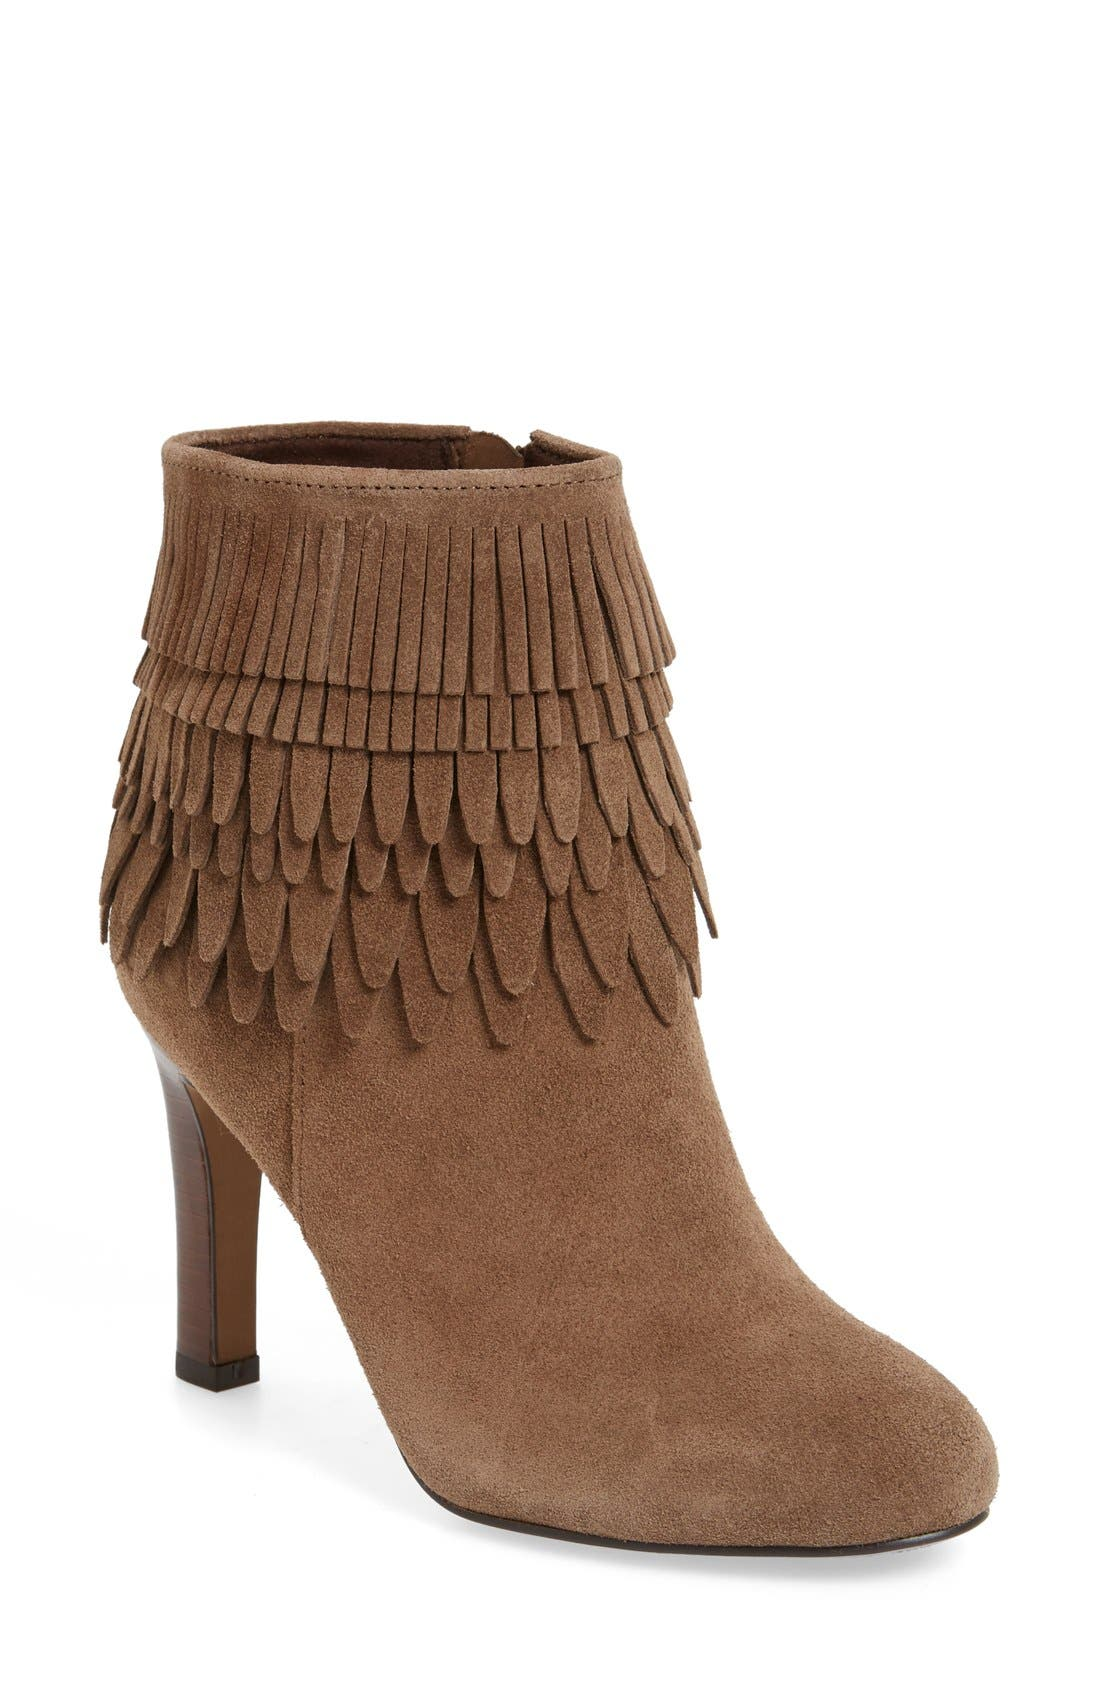 'Layton' Fringe Bootie,                             Main thumbnail 1, color,                             Havana Brown Suede